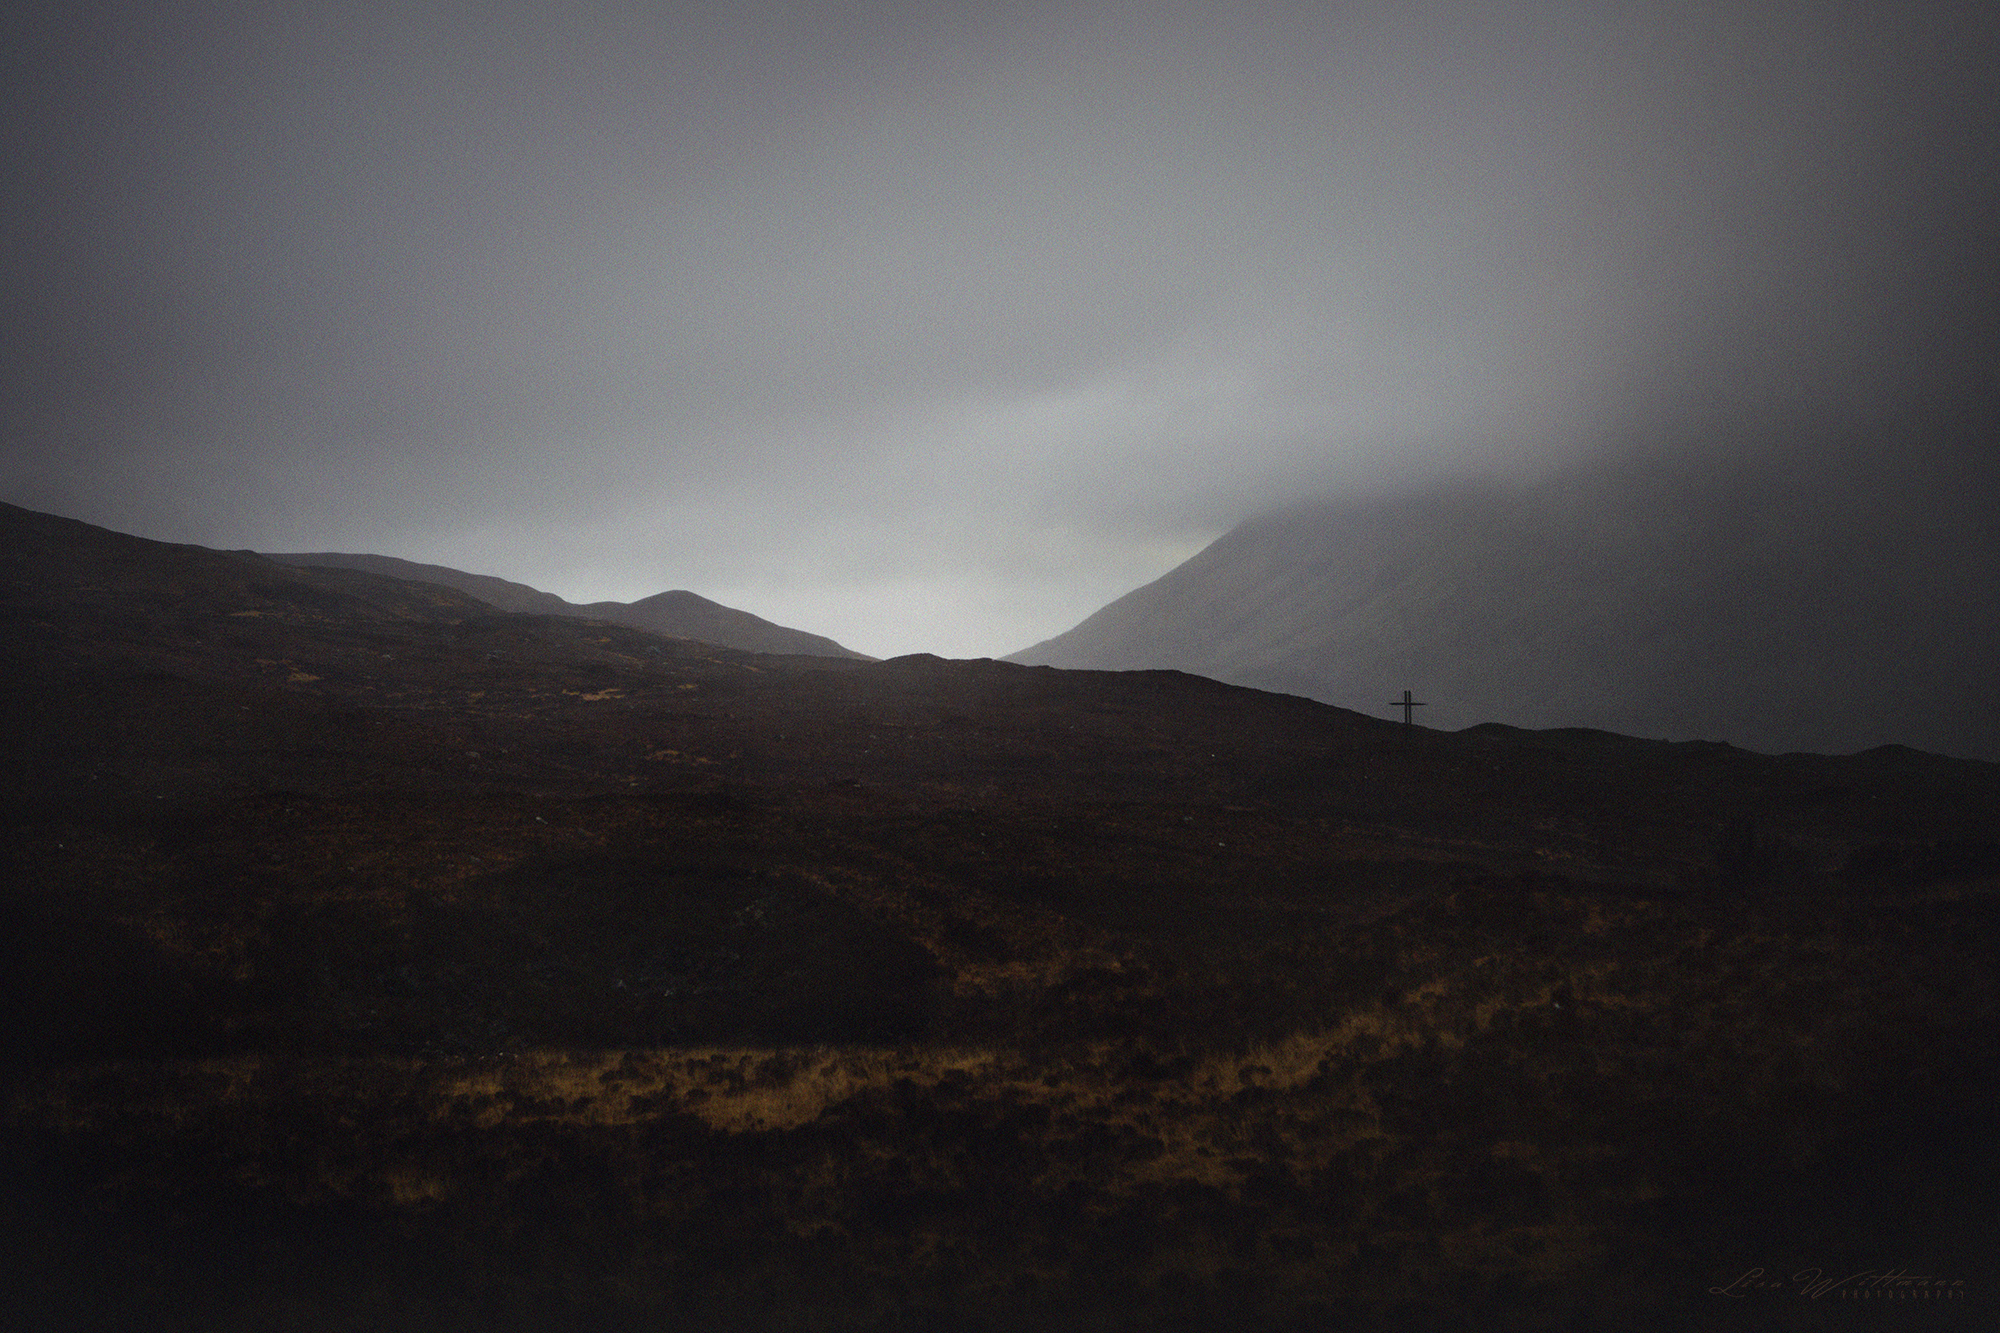 scotland_highlands_lisa_wittmann_photography_mountains_fog_water_beautiful_moody_canon_travel_paradise_fairytale_cold_film_moody